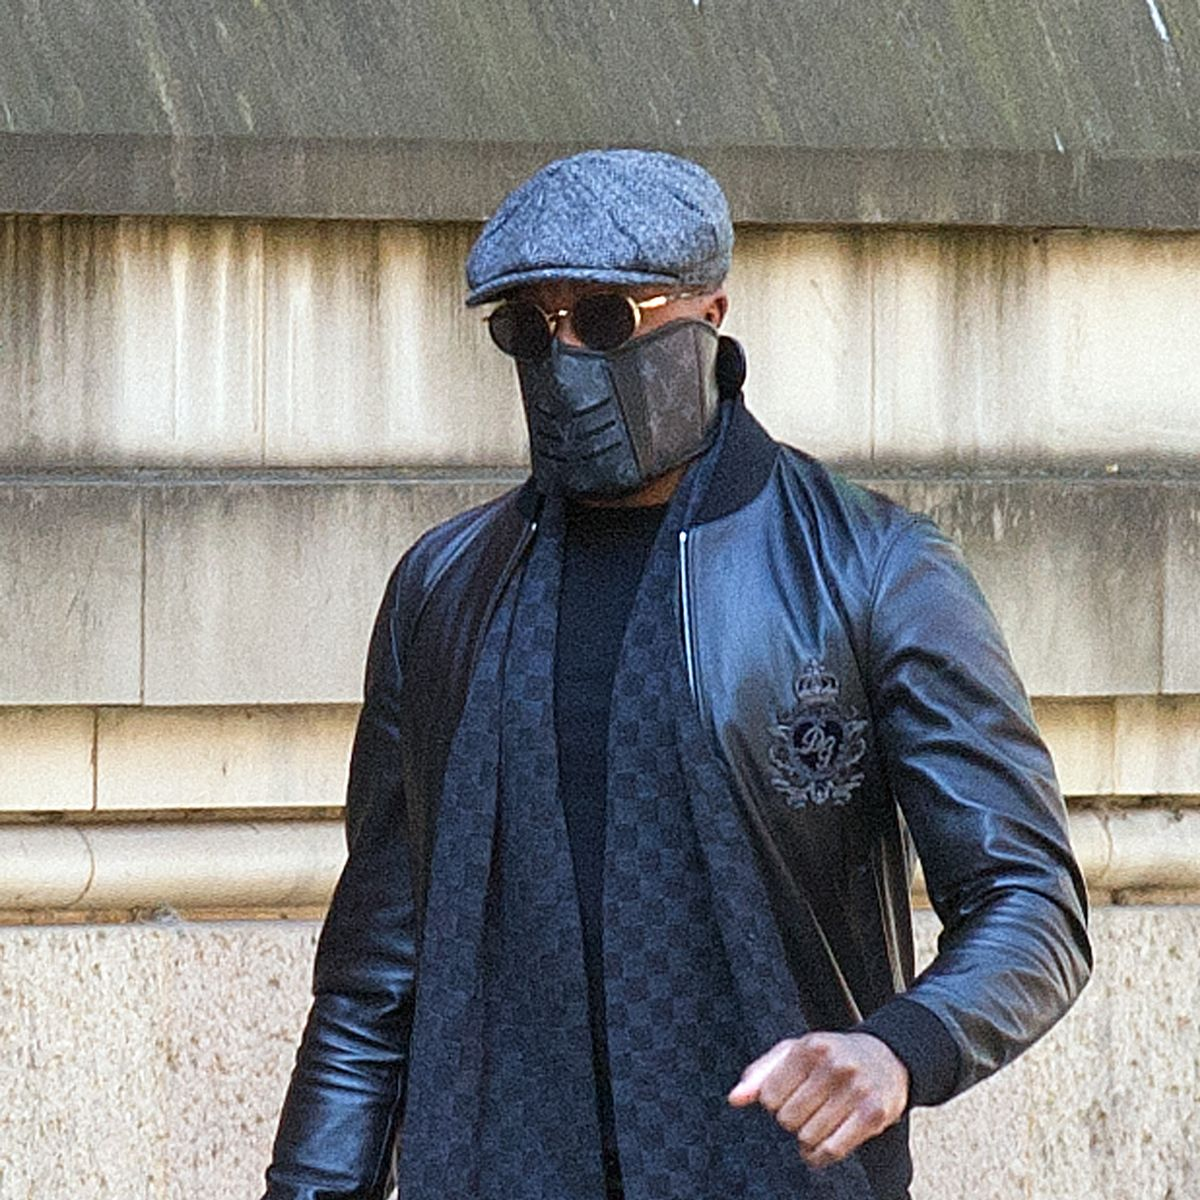 The musician - real name Aaron Davis - wore a black leather jacket, flat cap, a mask and sunglasses as he entered Minshull Street Crown Court on Monday morning